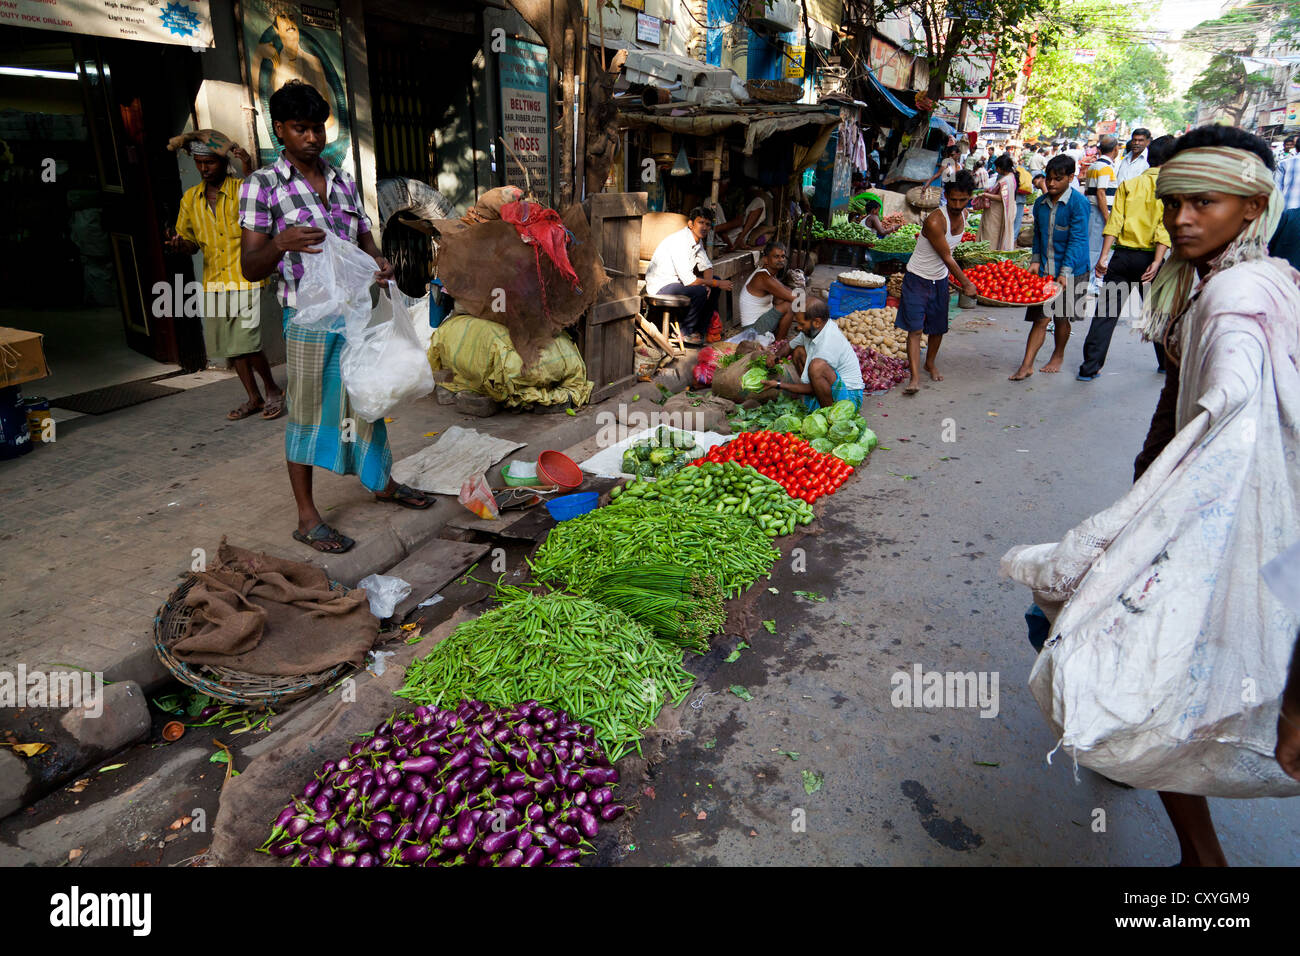 Sale of Food in the Streets of Kolkata, India - Stock Image